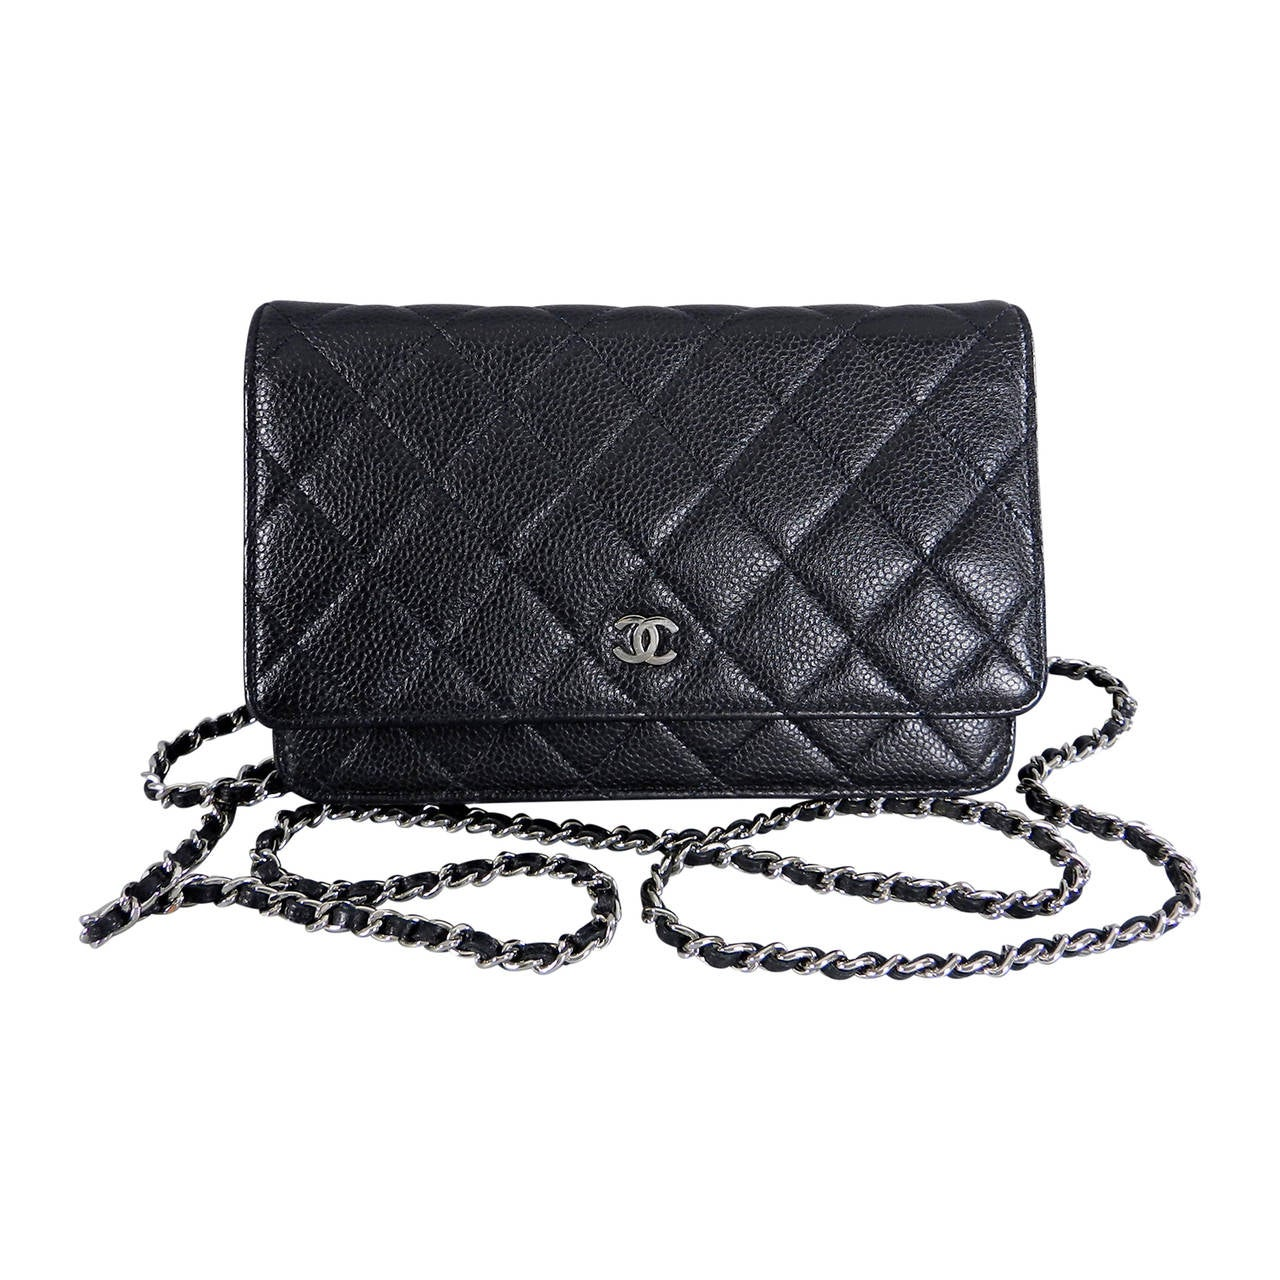 7d930212aeea Chanel Black Caviar Wallet on Chain - Silver Hardware at 1stdibs